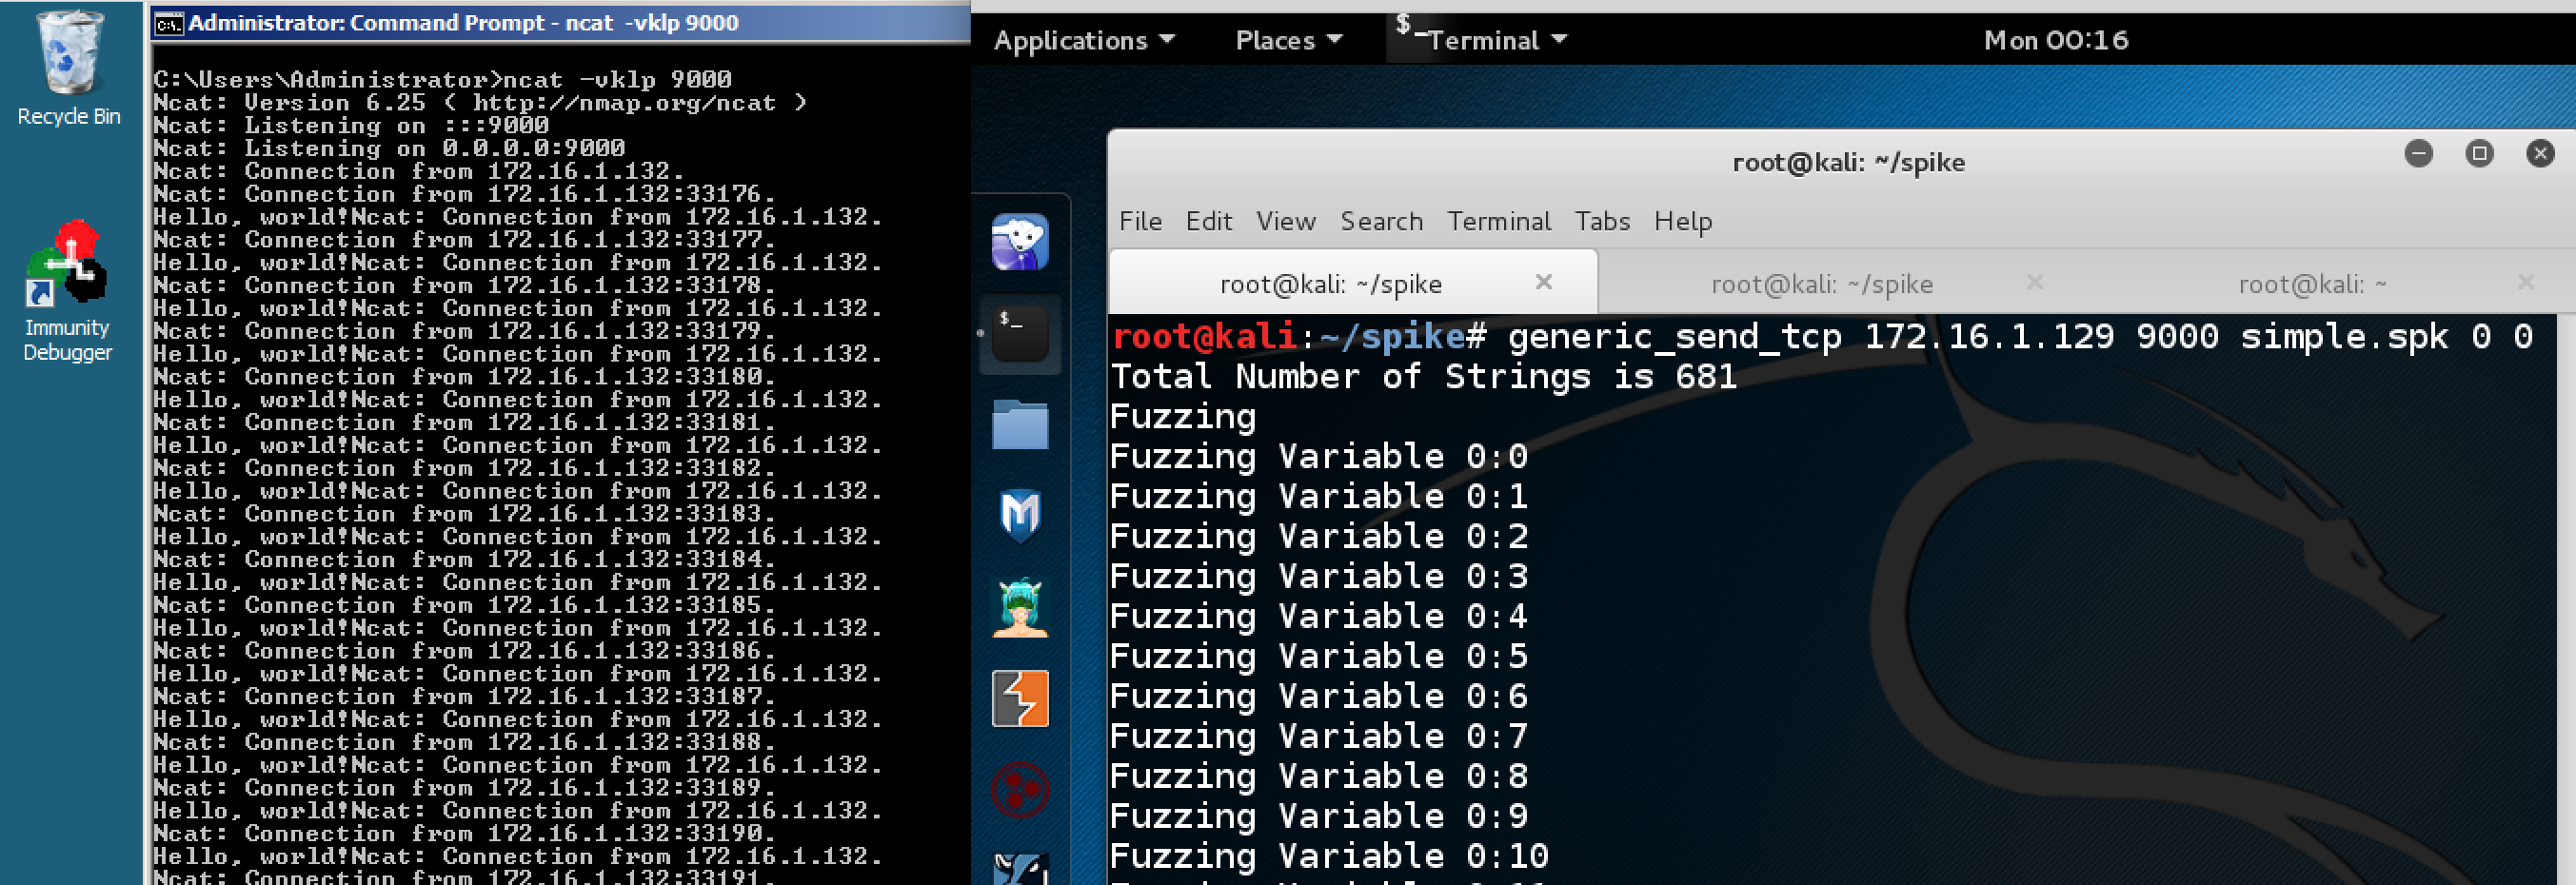 Windows command prompt nmap - Fuzzing The Ncat Listener With Varied Text